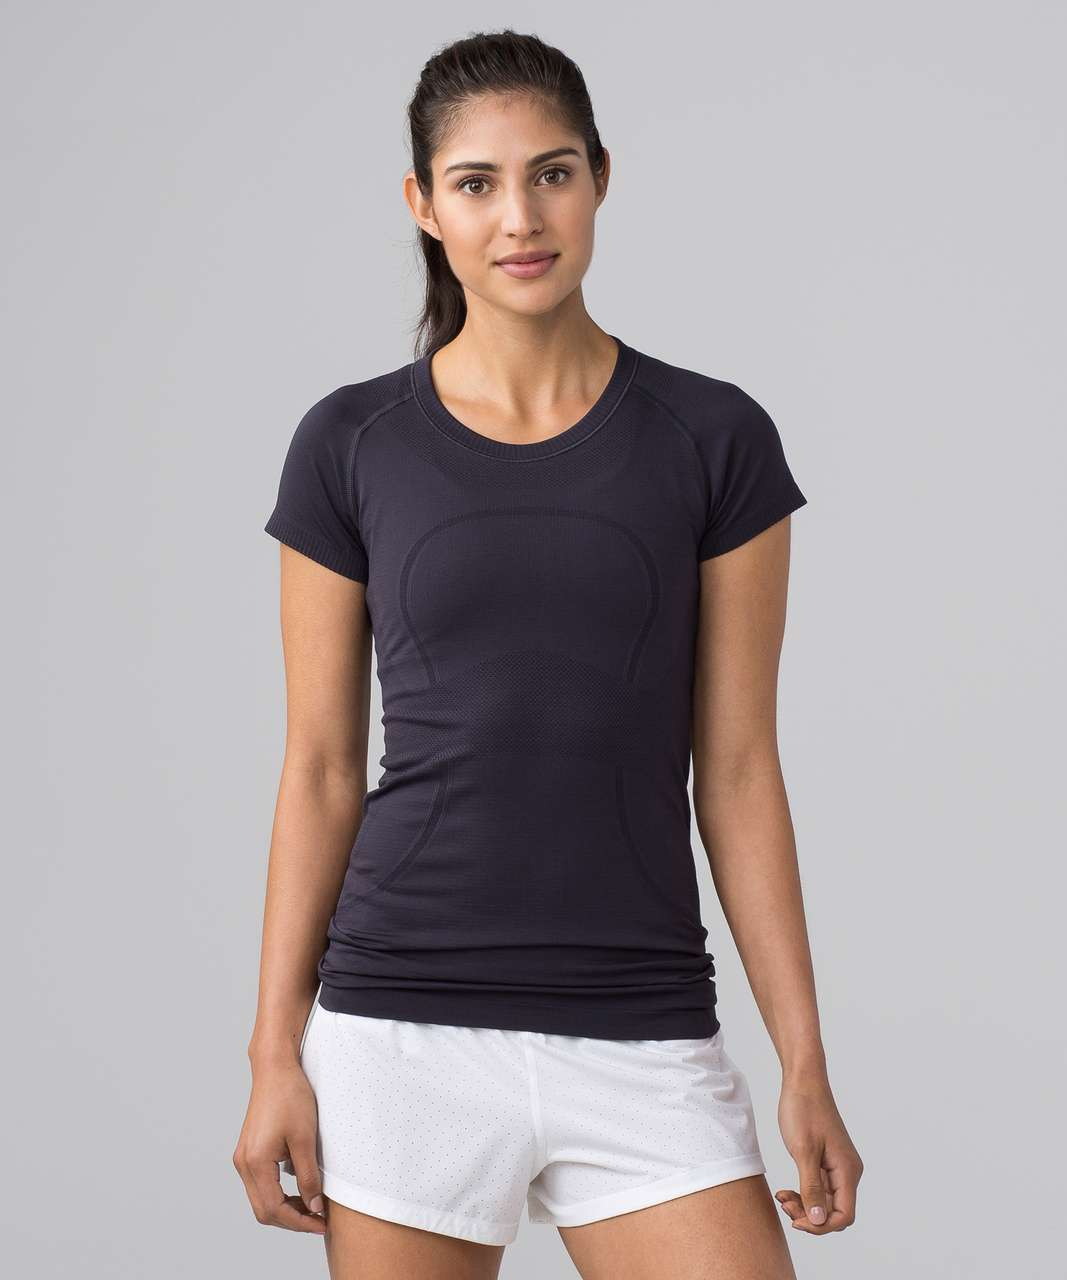 Lululemon Swiftly Tech Short Sleeve Crew - Boysenberry / Boysenberry